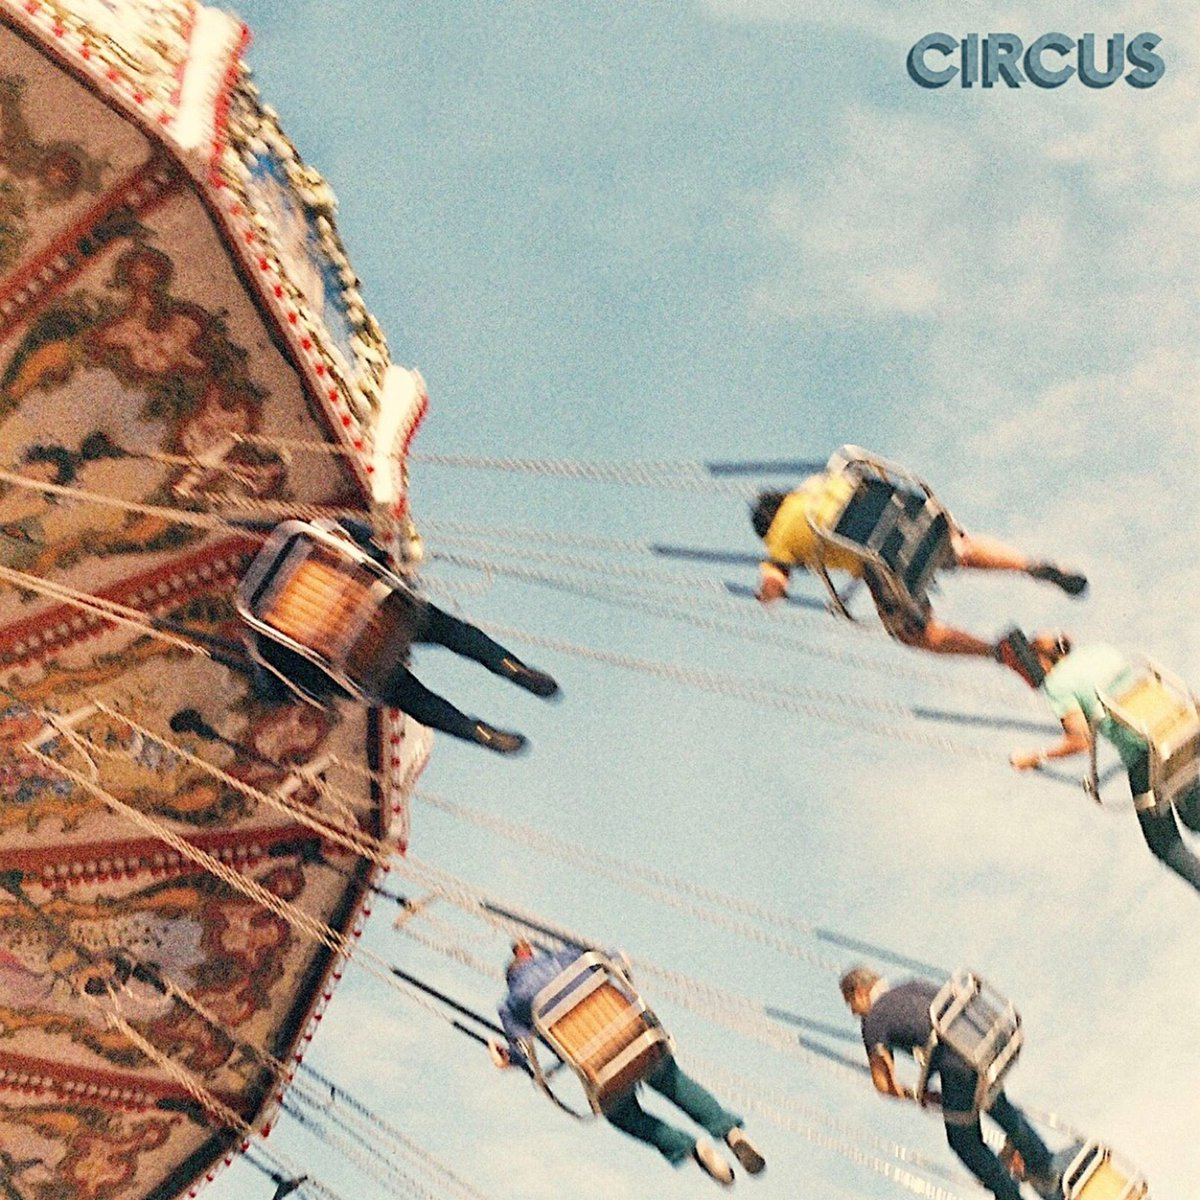 "Our new single ""Circus"" is coming very soon. At 21.08.20 this beast will rock your world! Follow us on #Spotify #AppleMusic to get it in your release radar! #rockmusic #sponsemusic"